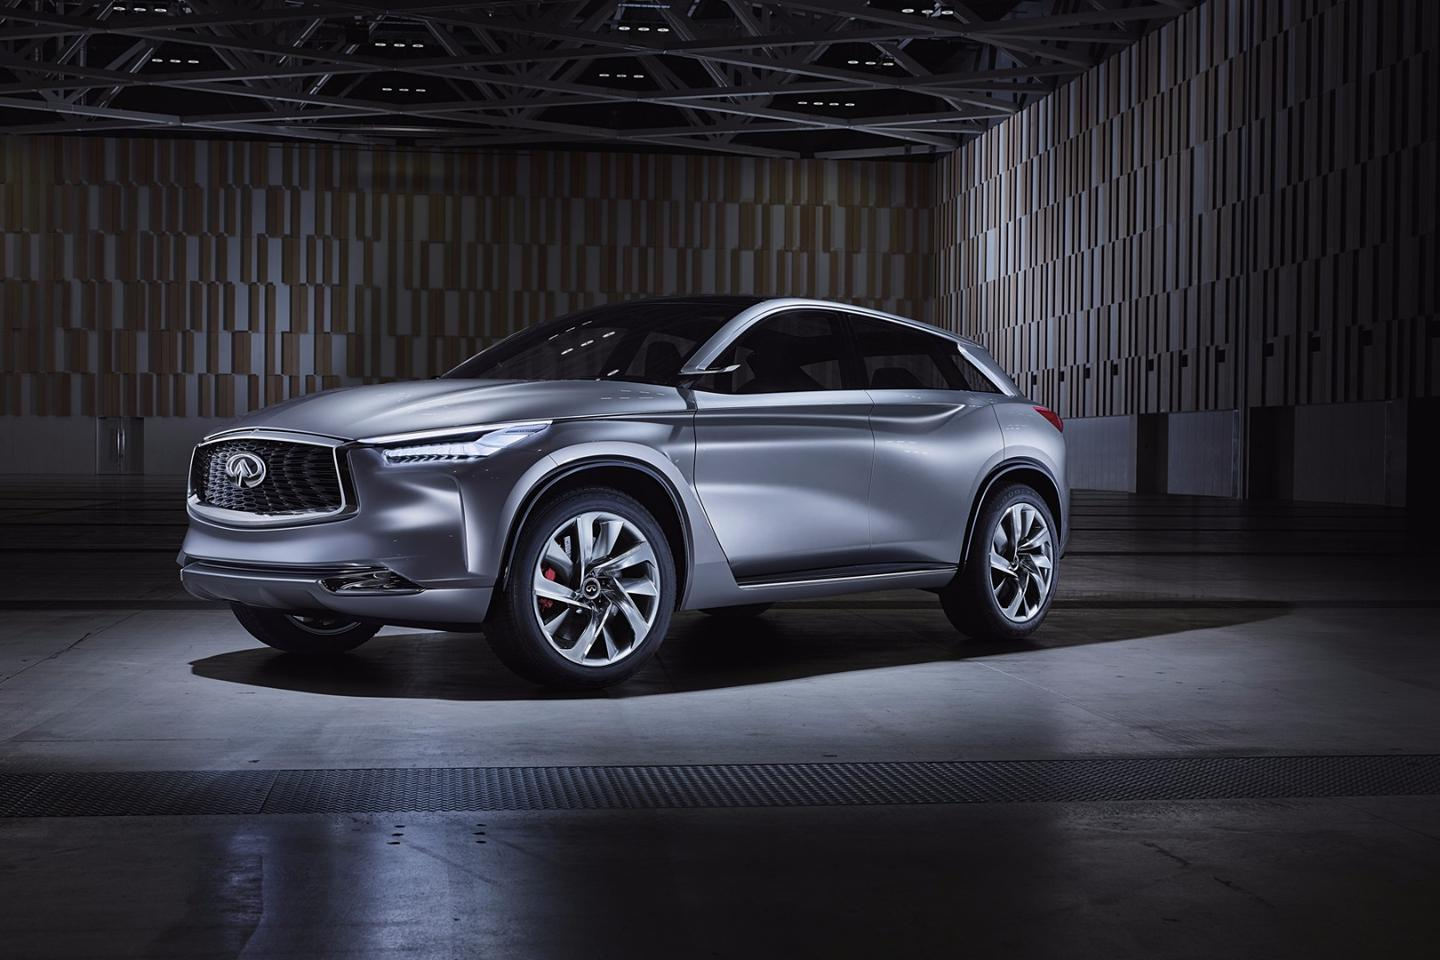 """The Infiniti QX Sport Inspiration concept is said to be influenced by Infiniti's """"Powerful Elegance"""" design approach"""